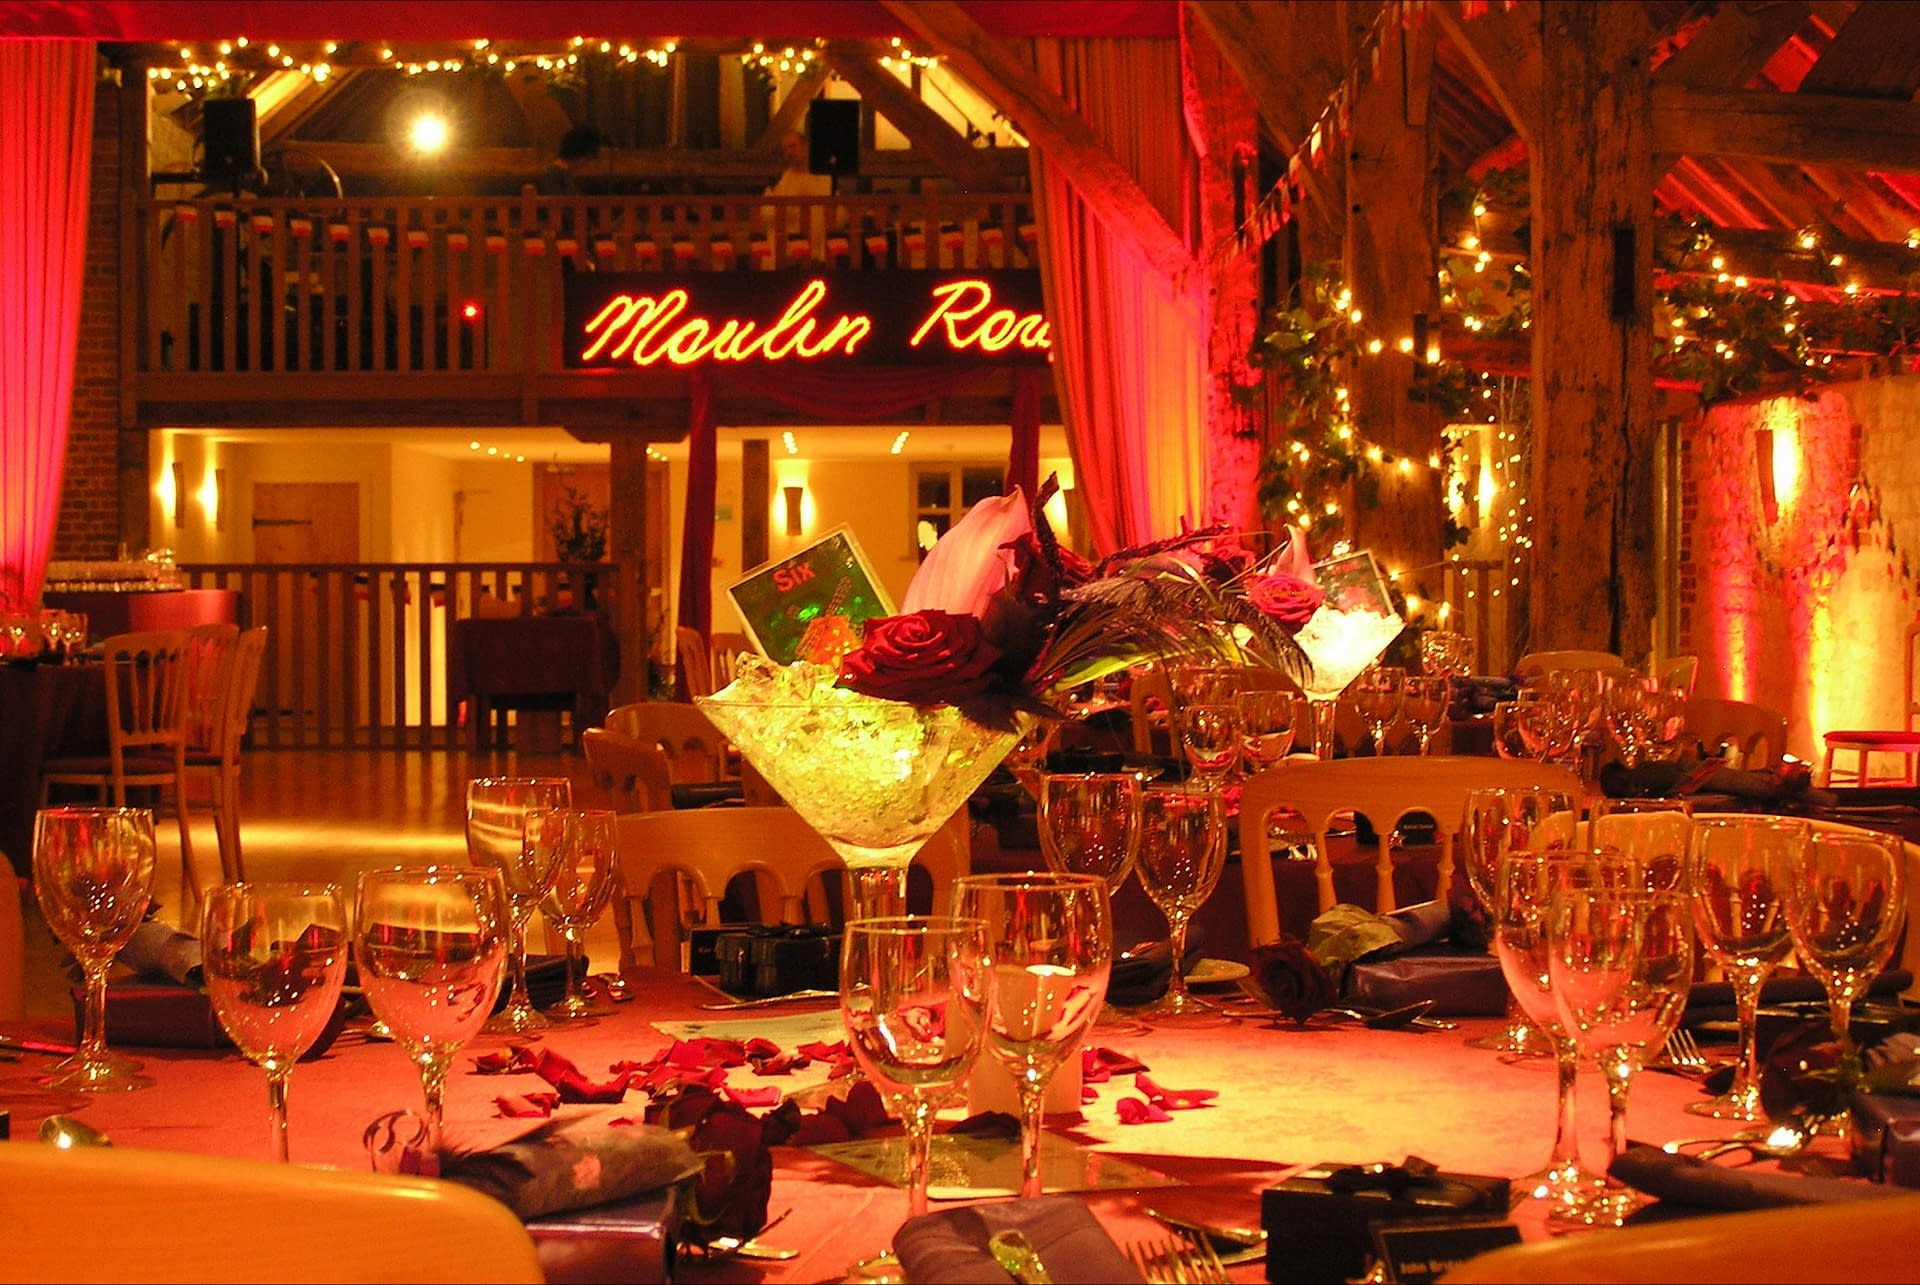 A Moulin Rouge themed party with mood lighting, illuminated sign, themed props and table centres at Bury Court Barn UK wedding venue supplied by event planning company Stressfree venue transformations